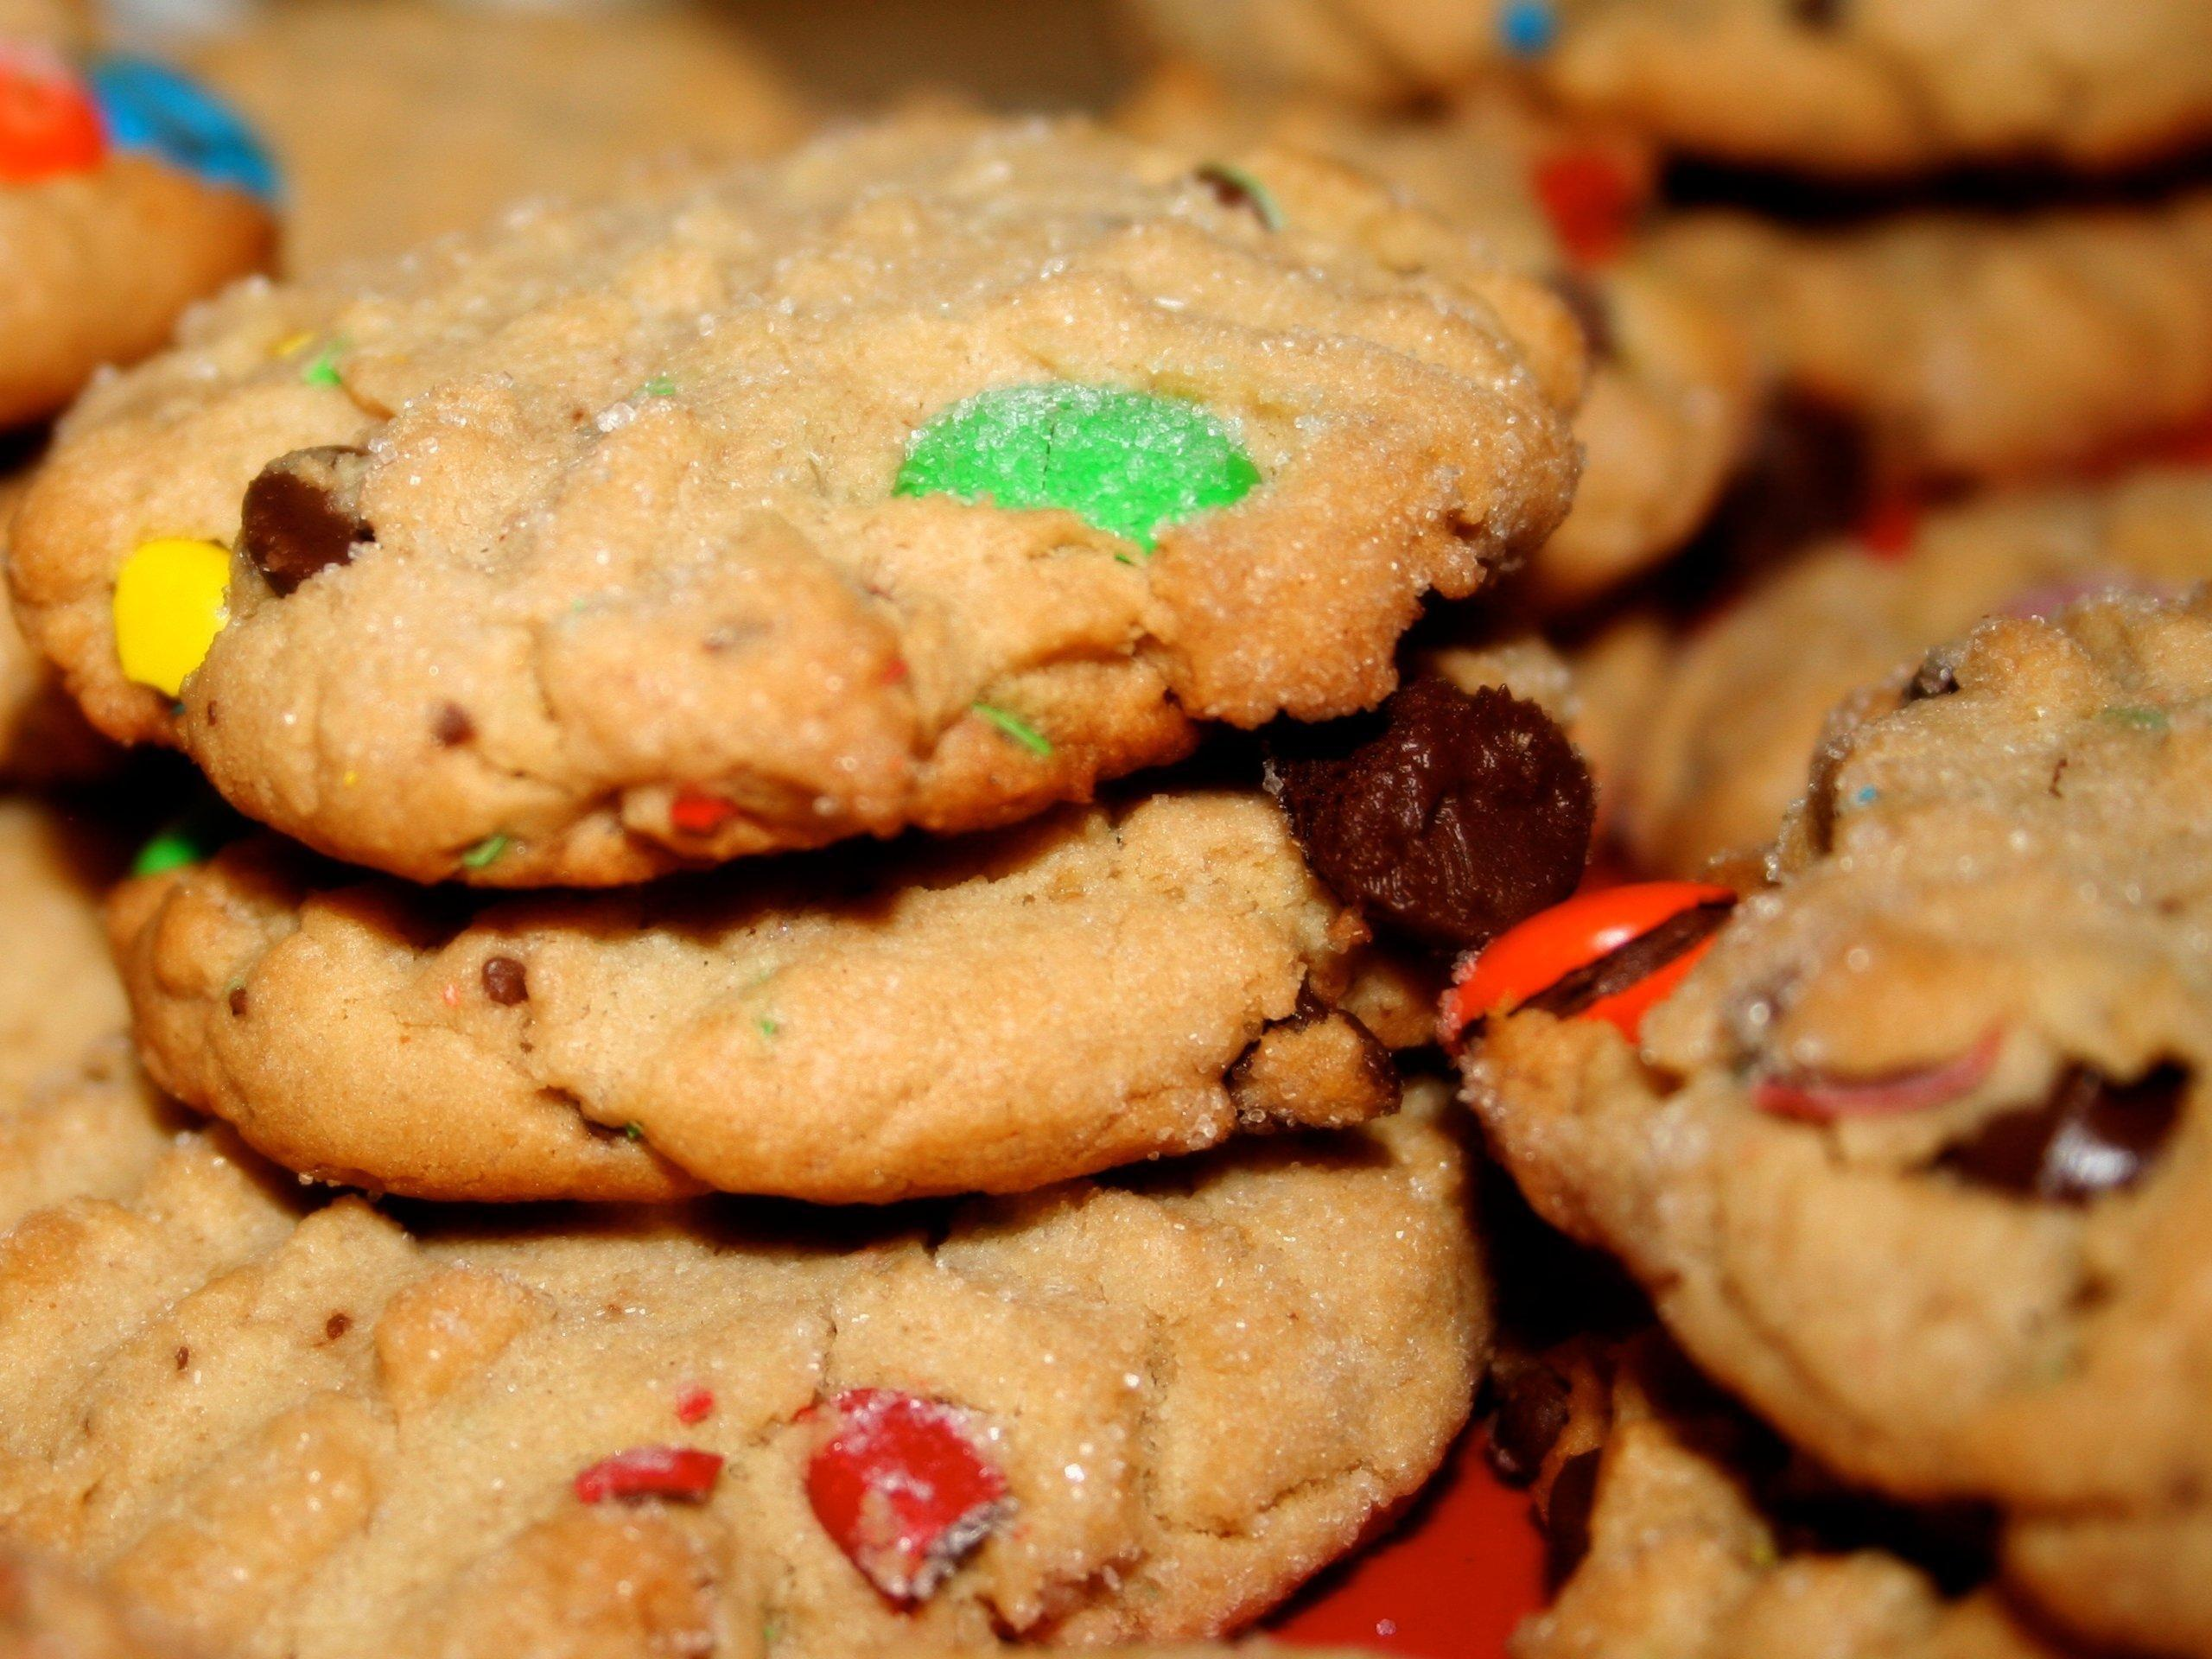 15 Disturbing Consequences Of Eating Too Much Sugar